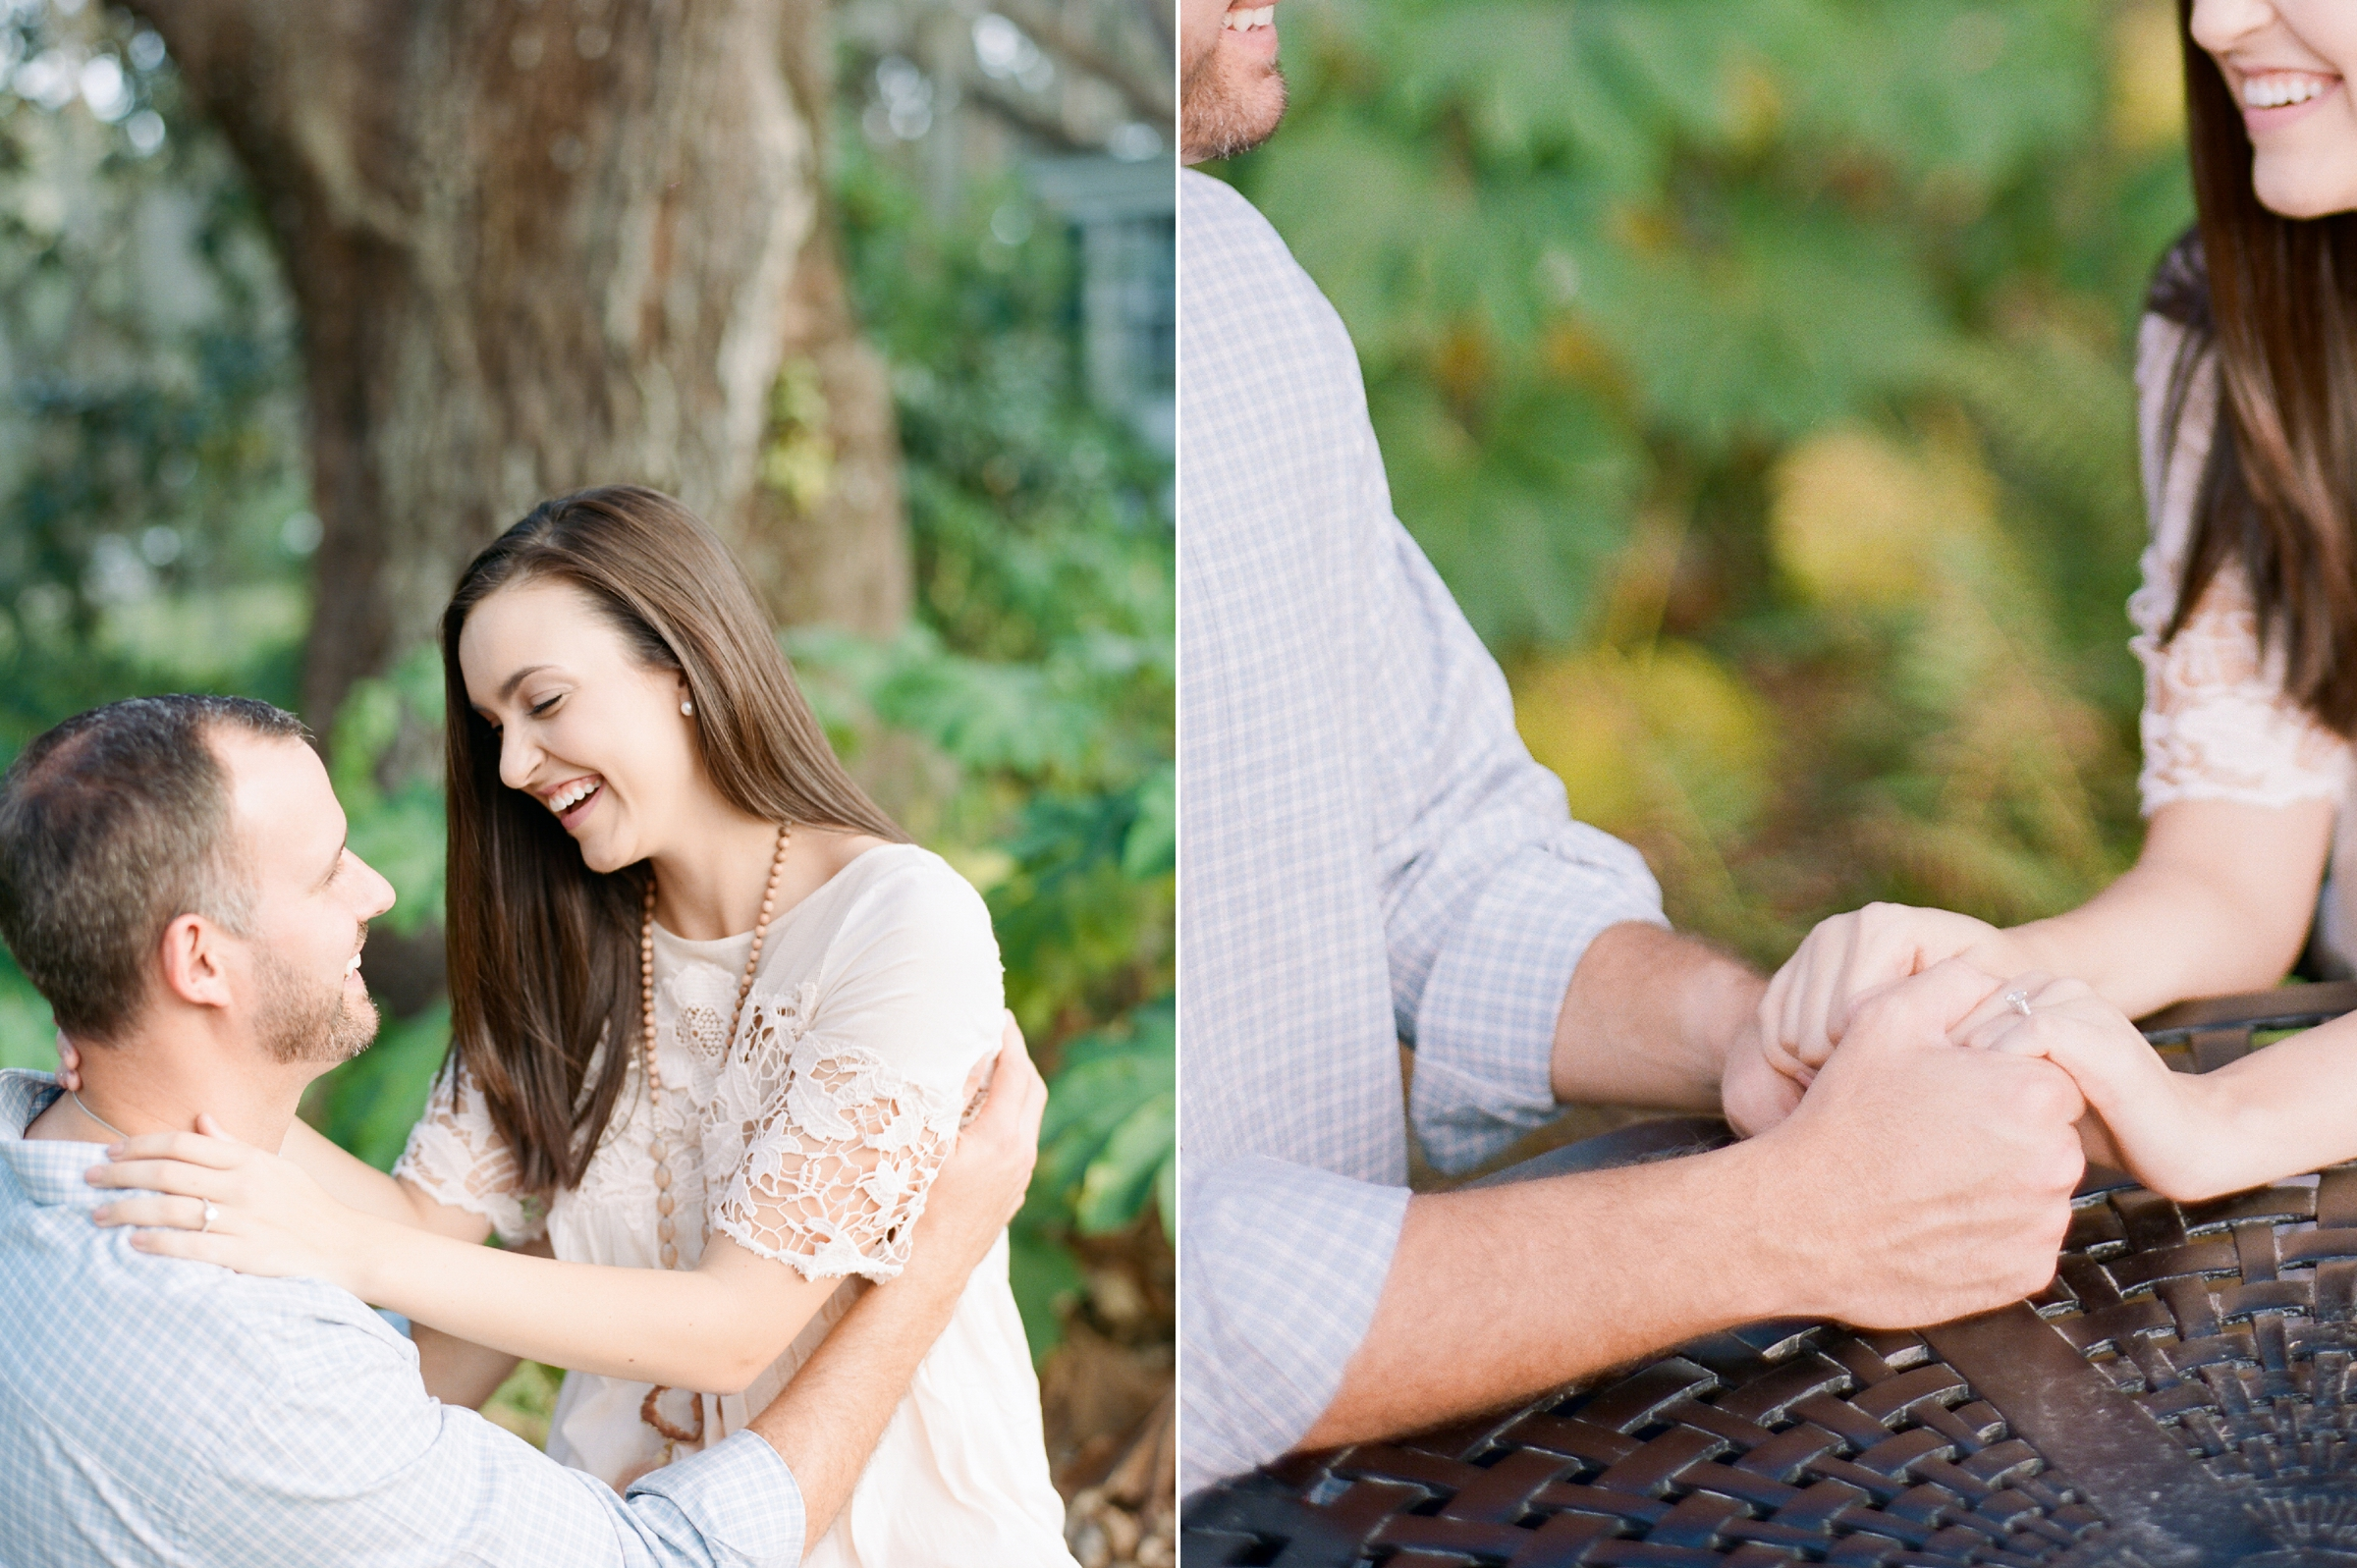 goodwood_museum_tallahassee_engagement_photographer_shannon_griffin_0008.jpg